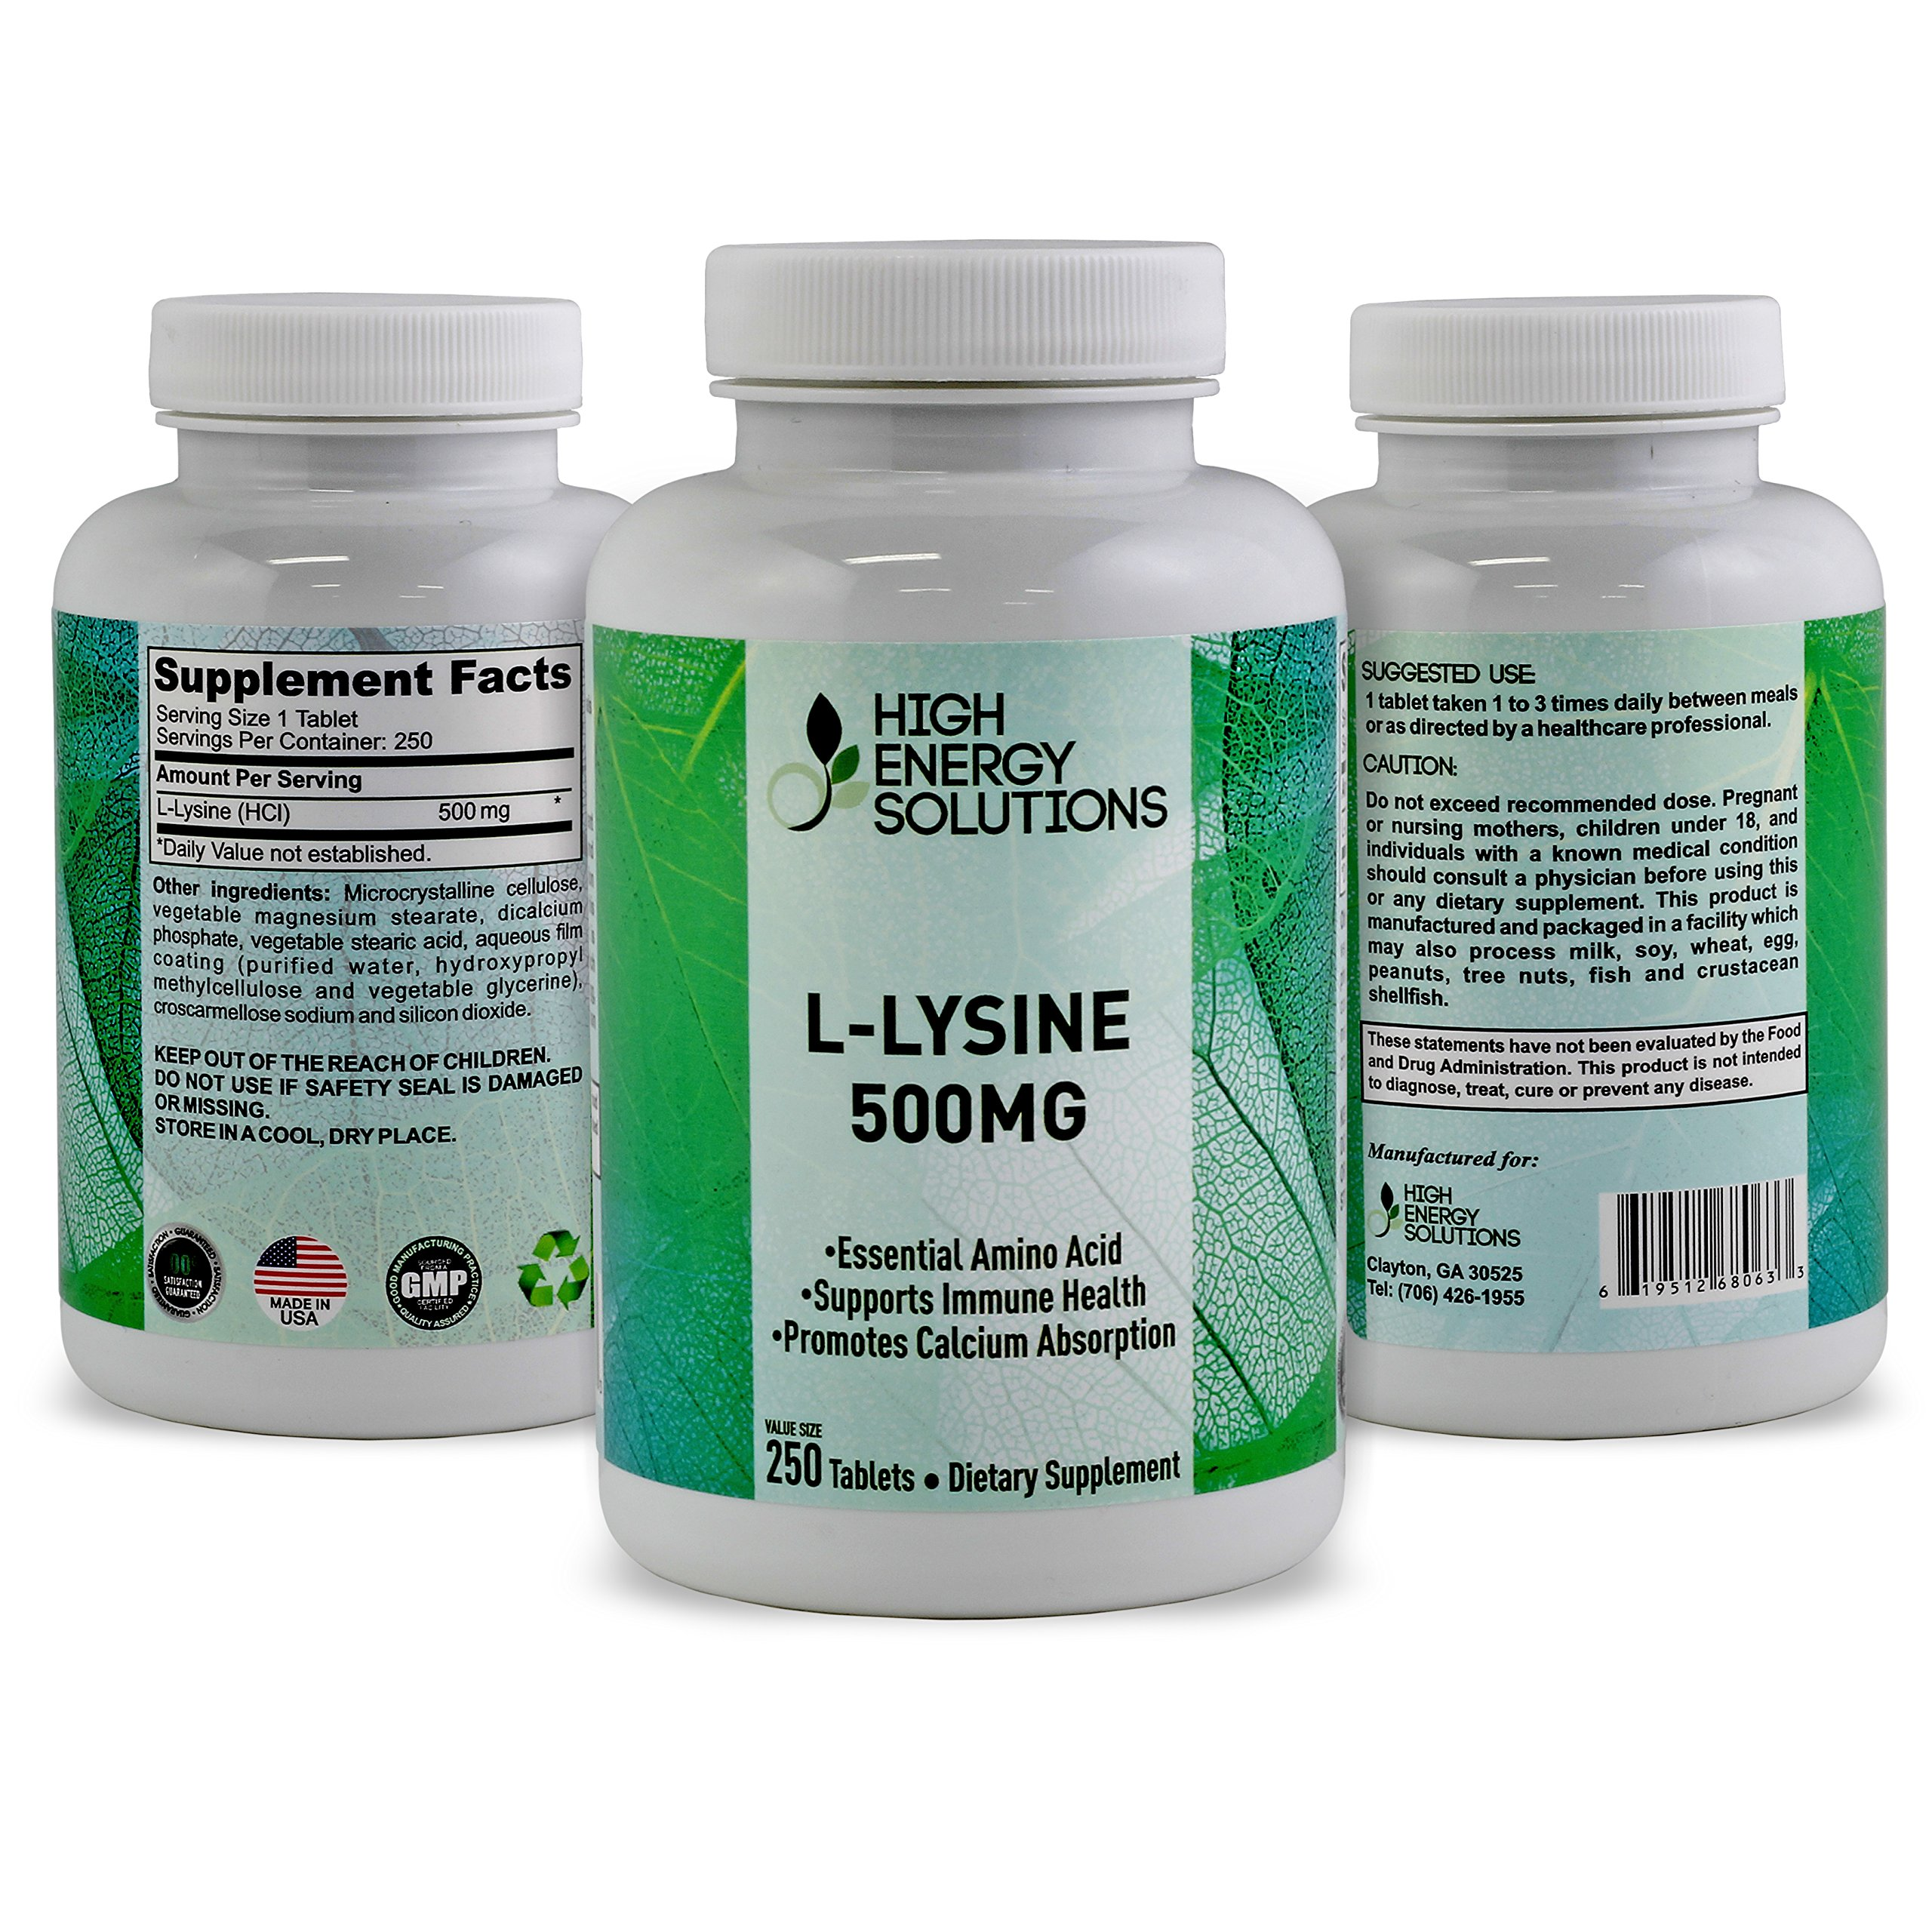 HIGH ENERGY SOLUTIONS - L-LYSINE - Value Sized 250 Tablet Bottle 100% Pure - Potent 500MG Essential Amino Acid Tablets For Amazing Health Benefits - Ultimate Bio-Availability And Absorption GMP - USA by HIGH ENERGY SOLUTIONS